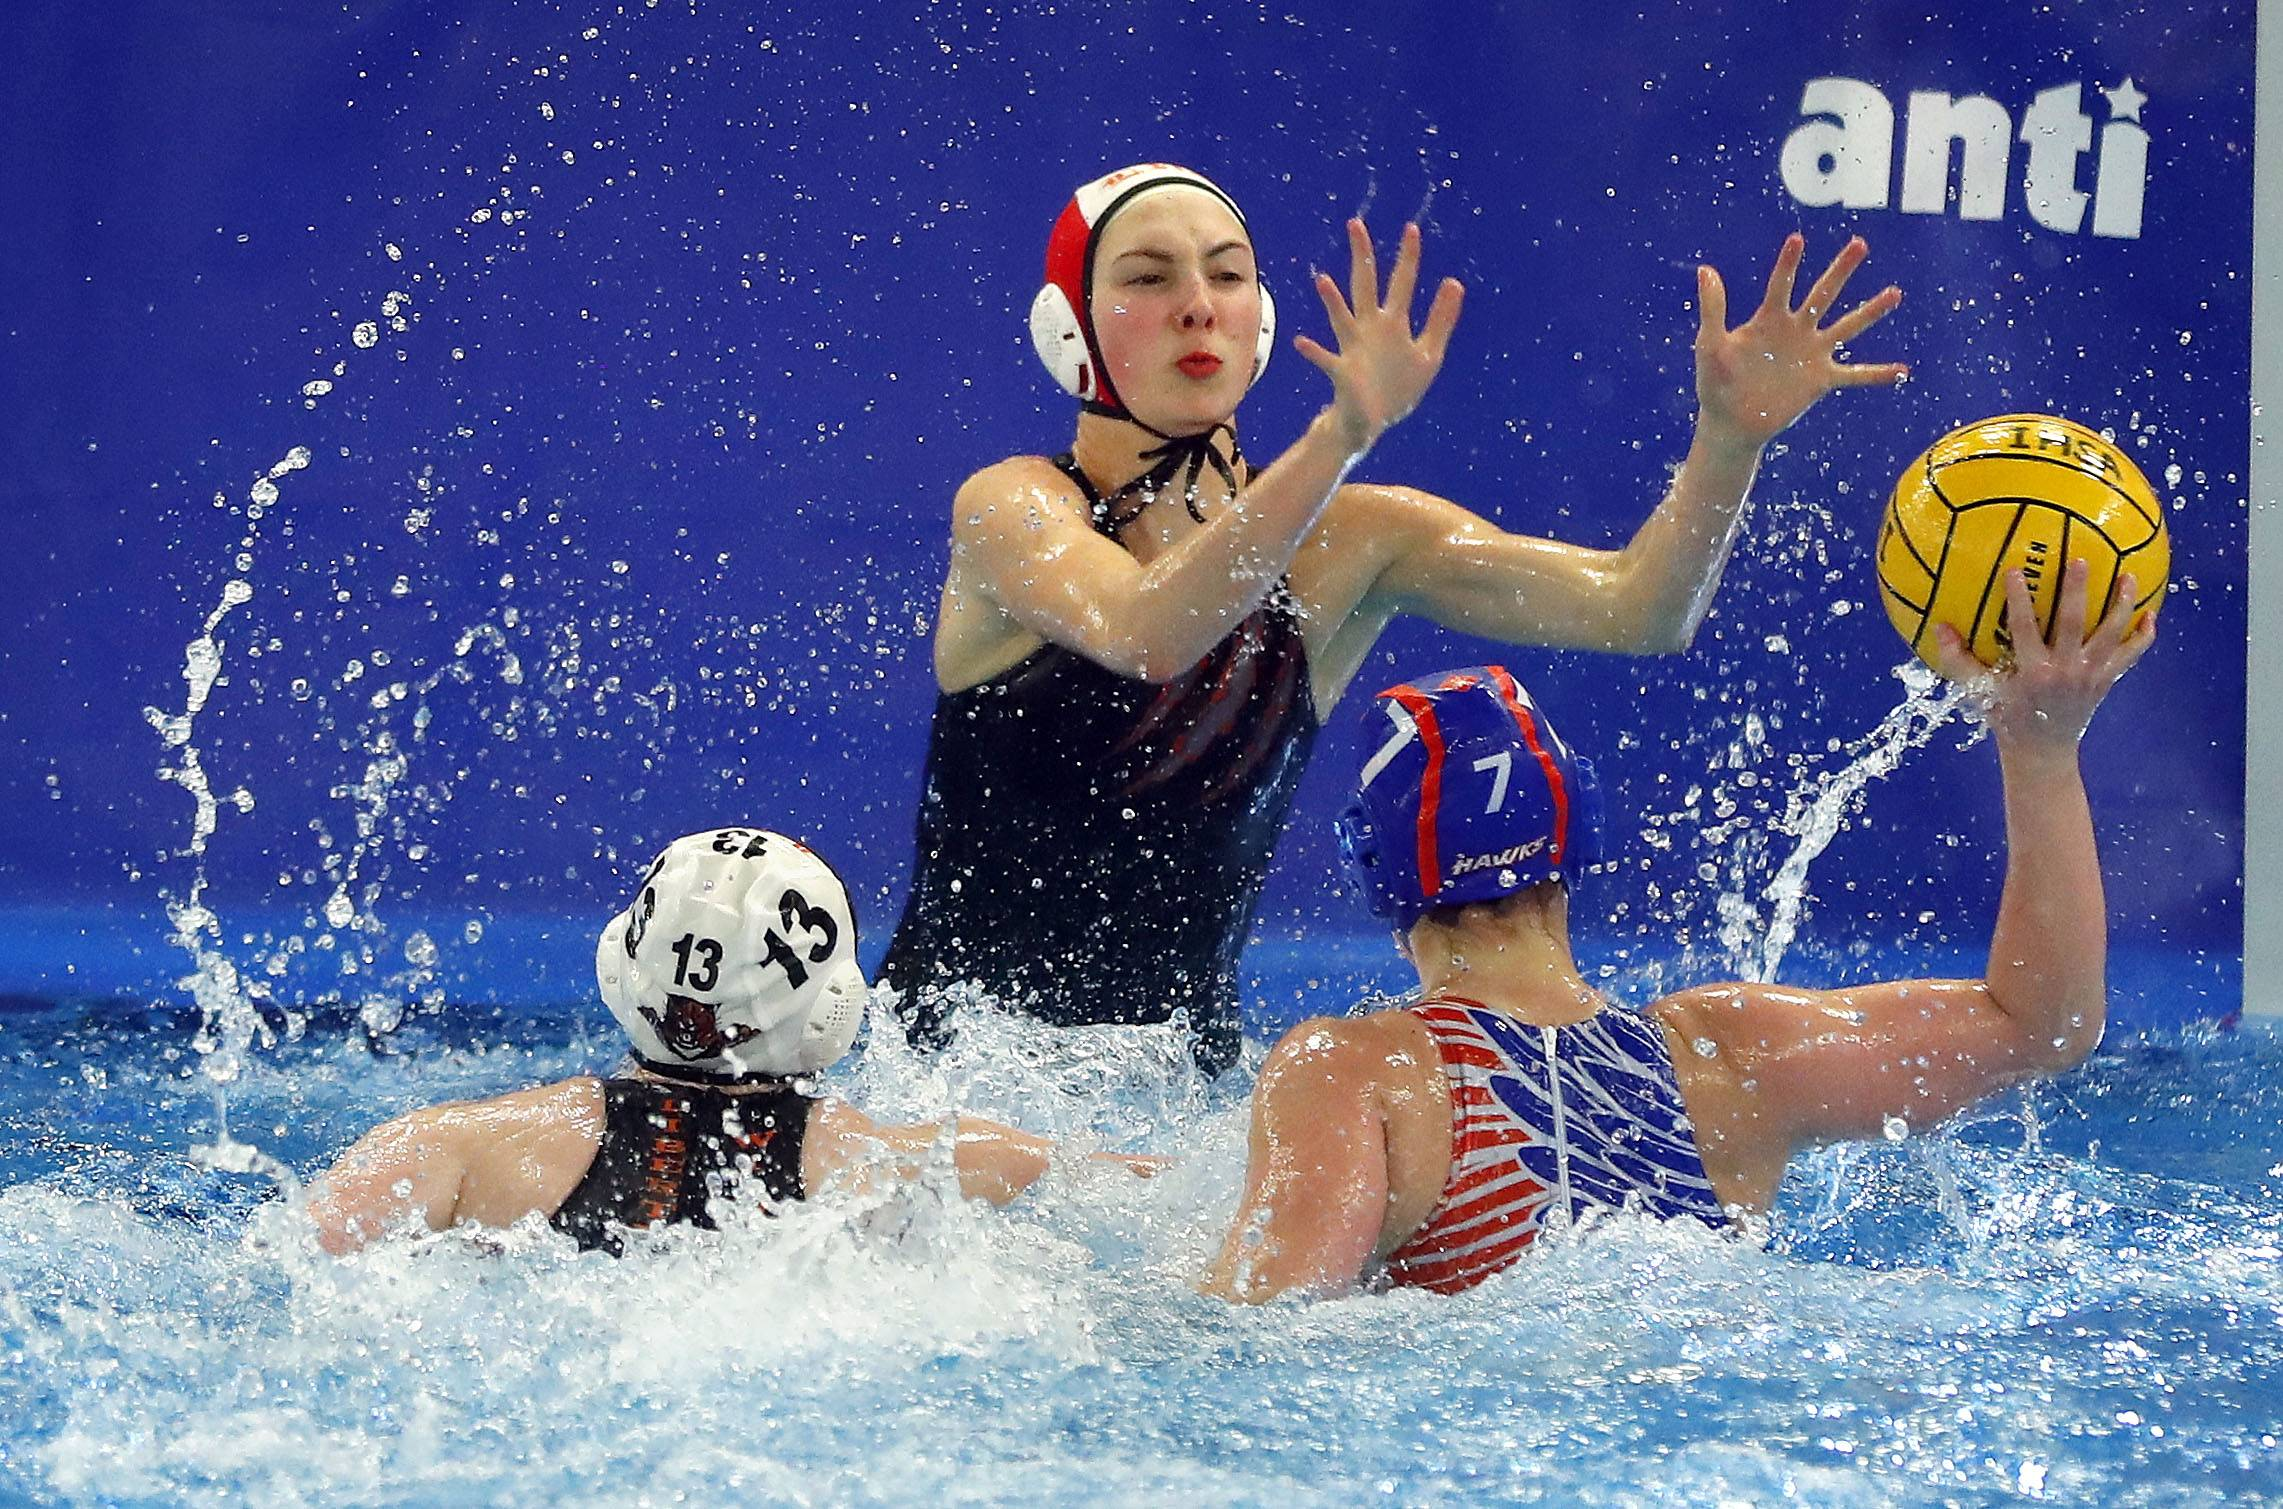 Hoffman Estates' Abigail Fuscone (7) shoots on Libertyville goalie Katie DeAcetis during girls water polo action Monday at Hoffman Estates.